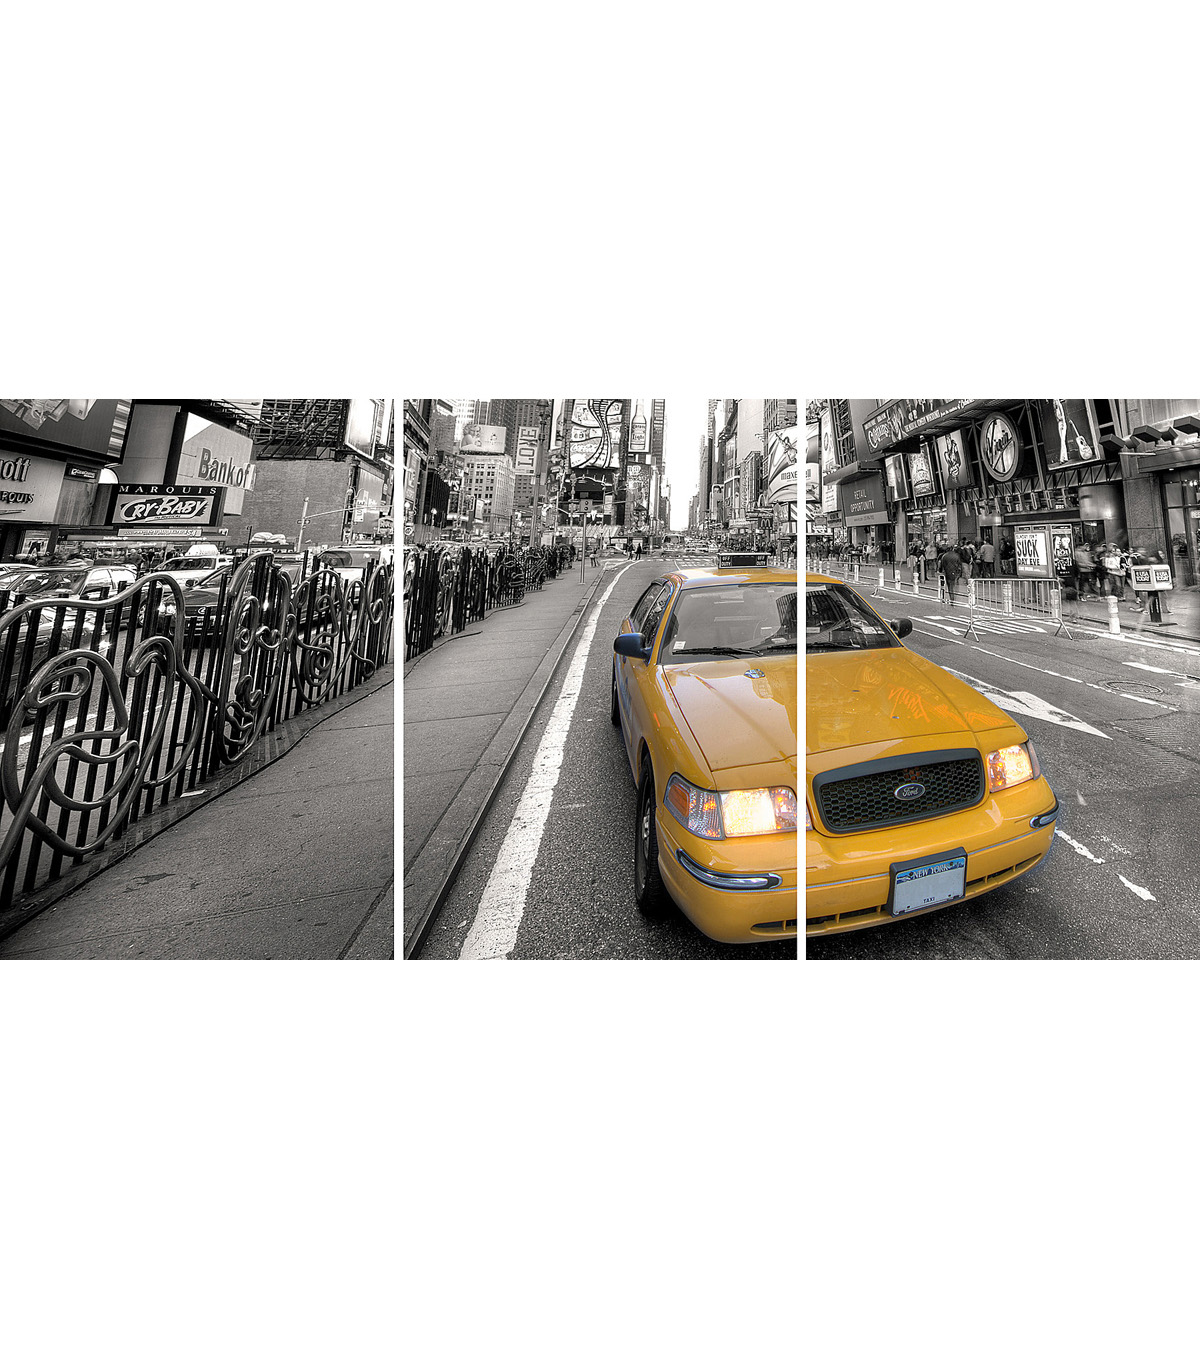 Home Decor Yellow Taxi Wall Decal, 3 Piece Set